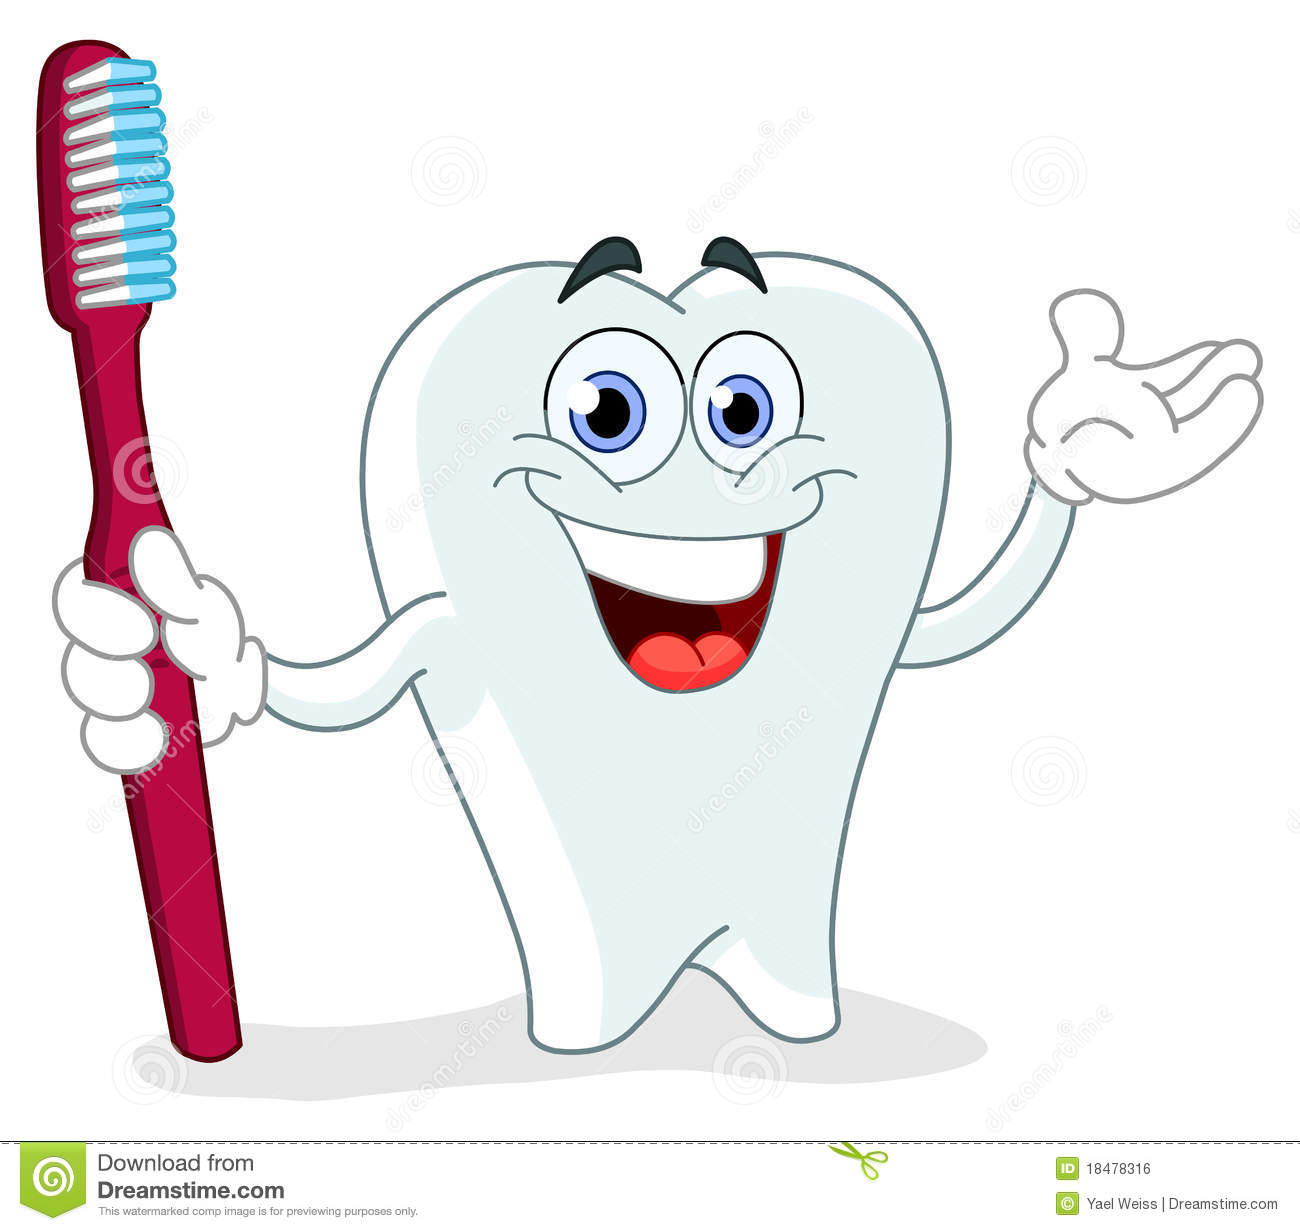 ... Tooth With Toothbrush Royalty Free Stock Image - Image: 18478316